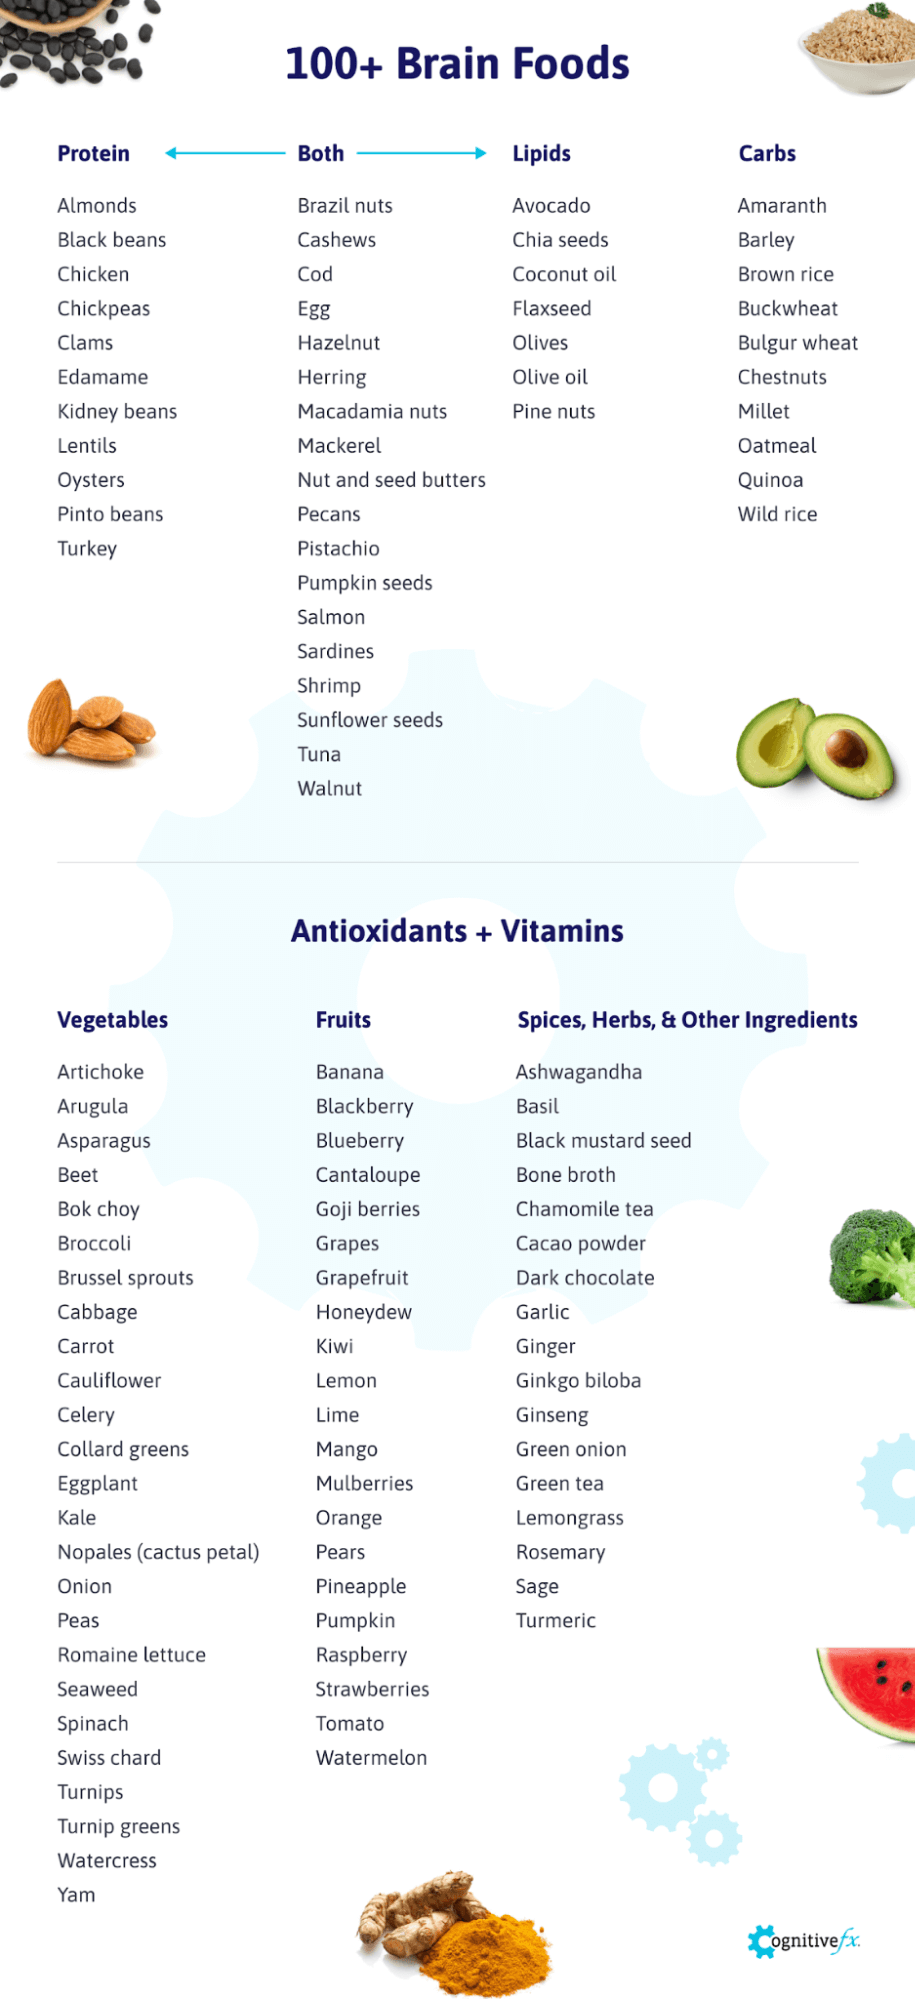 There are many foods that are good for your brain including beans, nuts, oils, fruits and vegetables